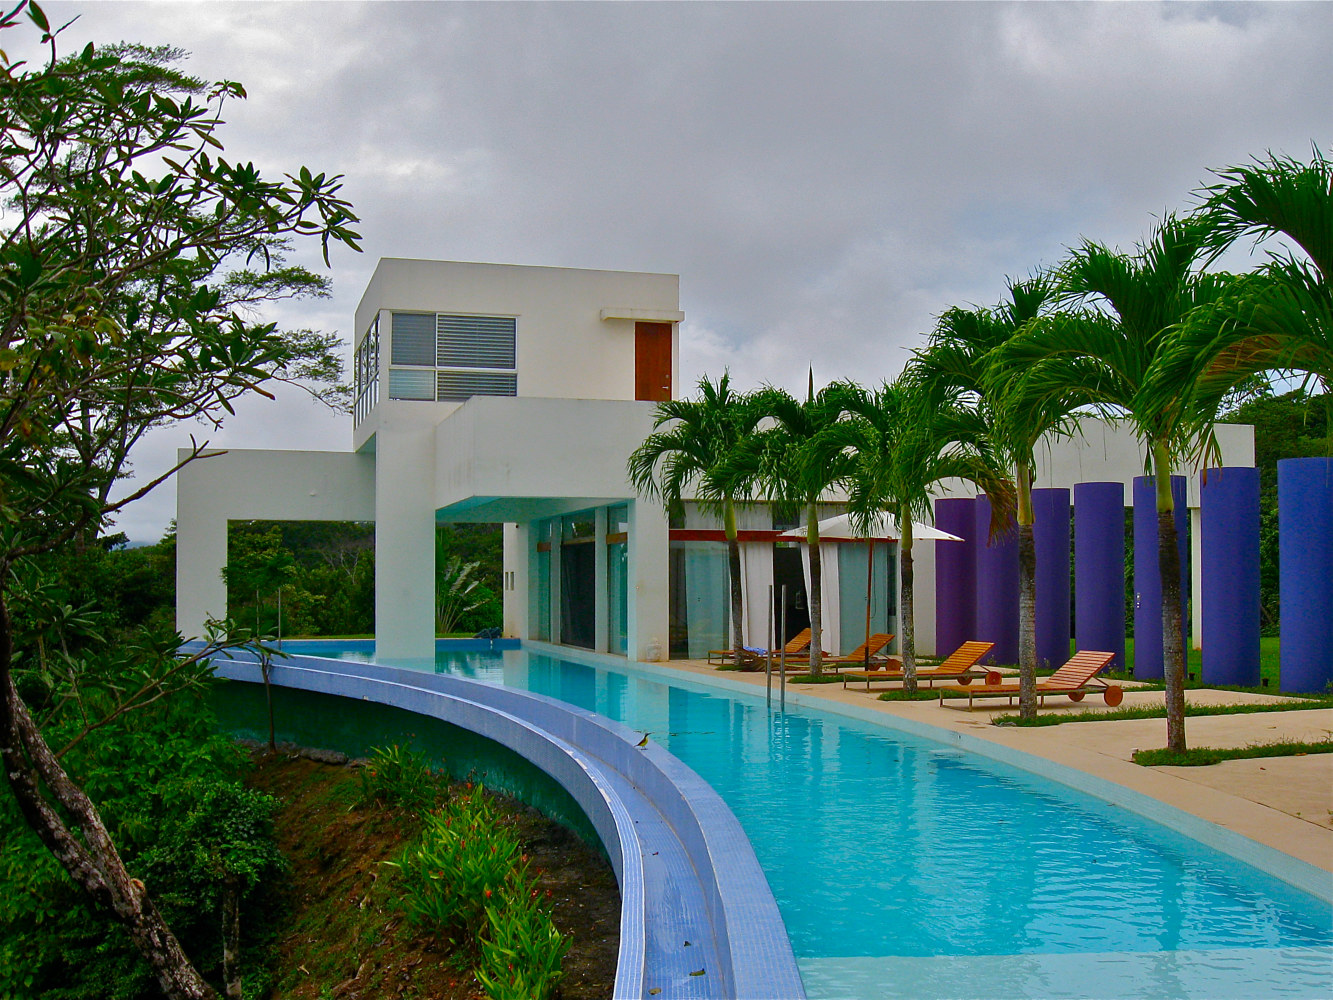 VILLA IN MONTEZUMA, COSTA RICA by Joeann Edmonds-Matthew